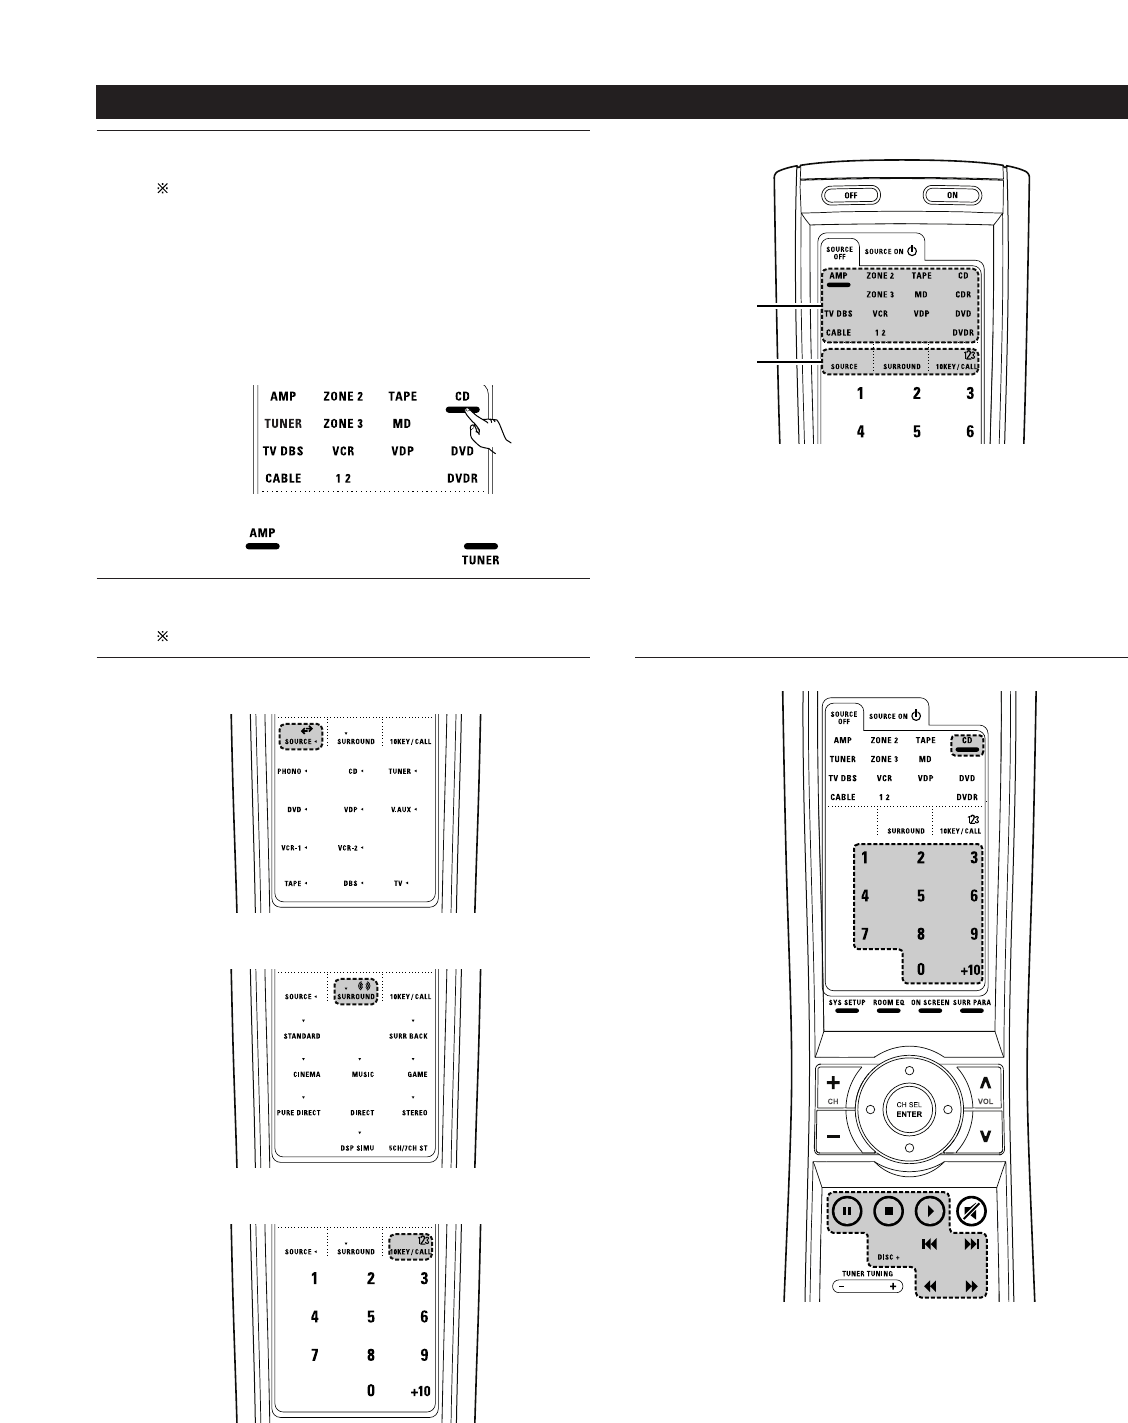 Page 51 of Denon Stereo System AVR-3805 User Guide